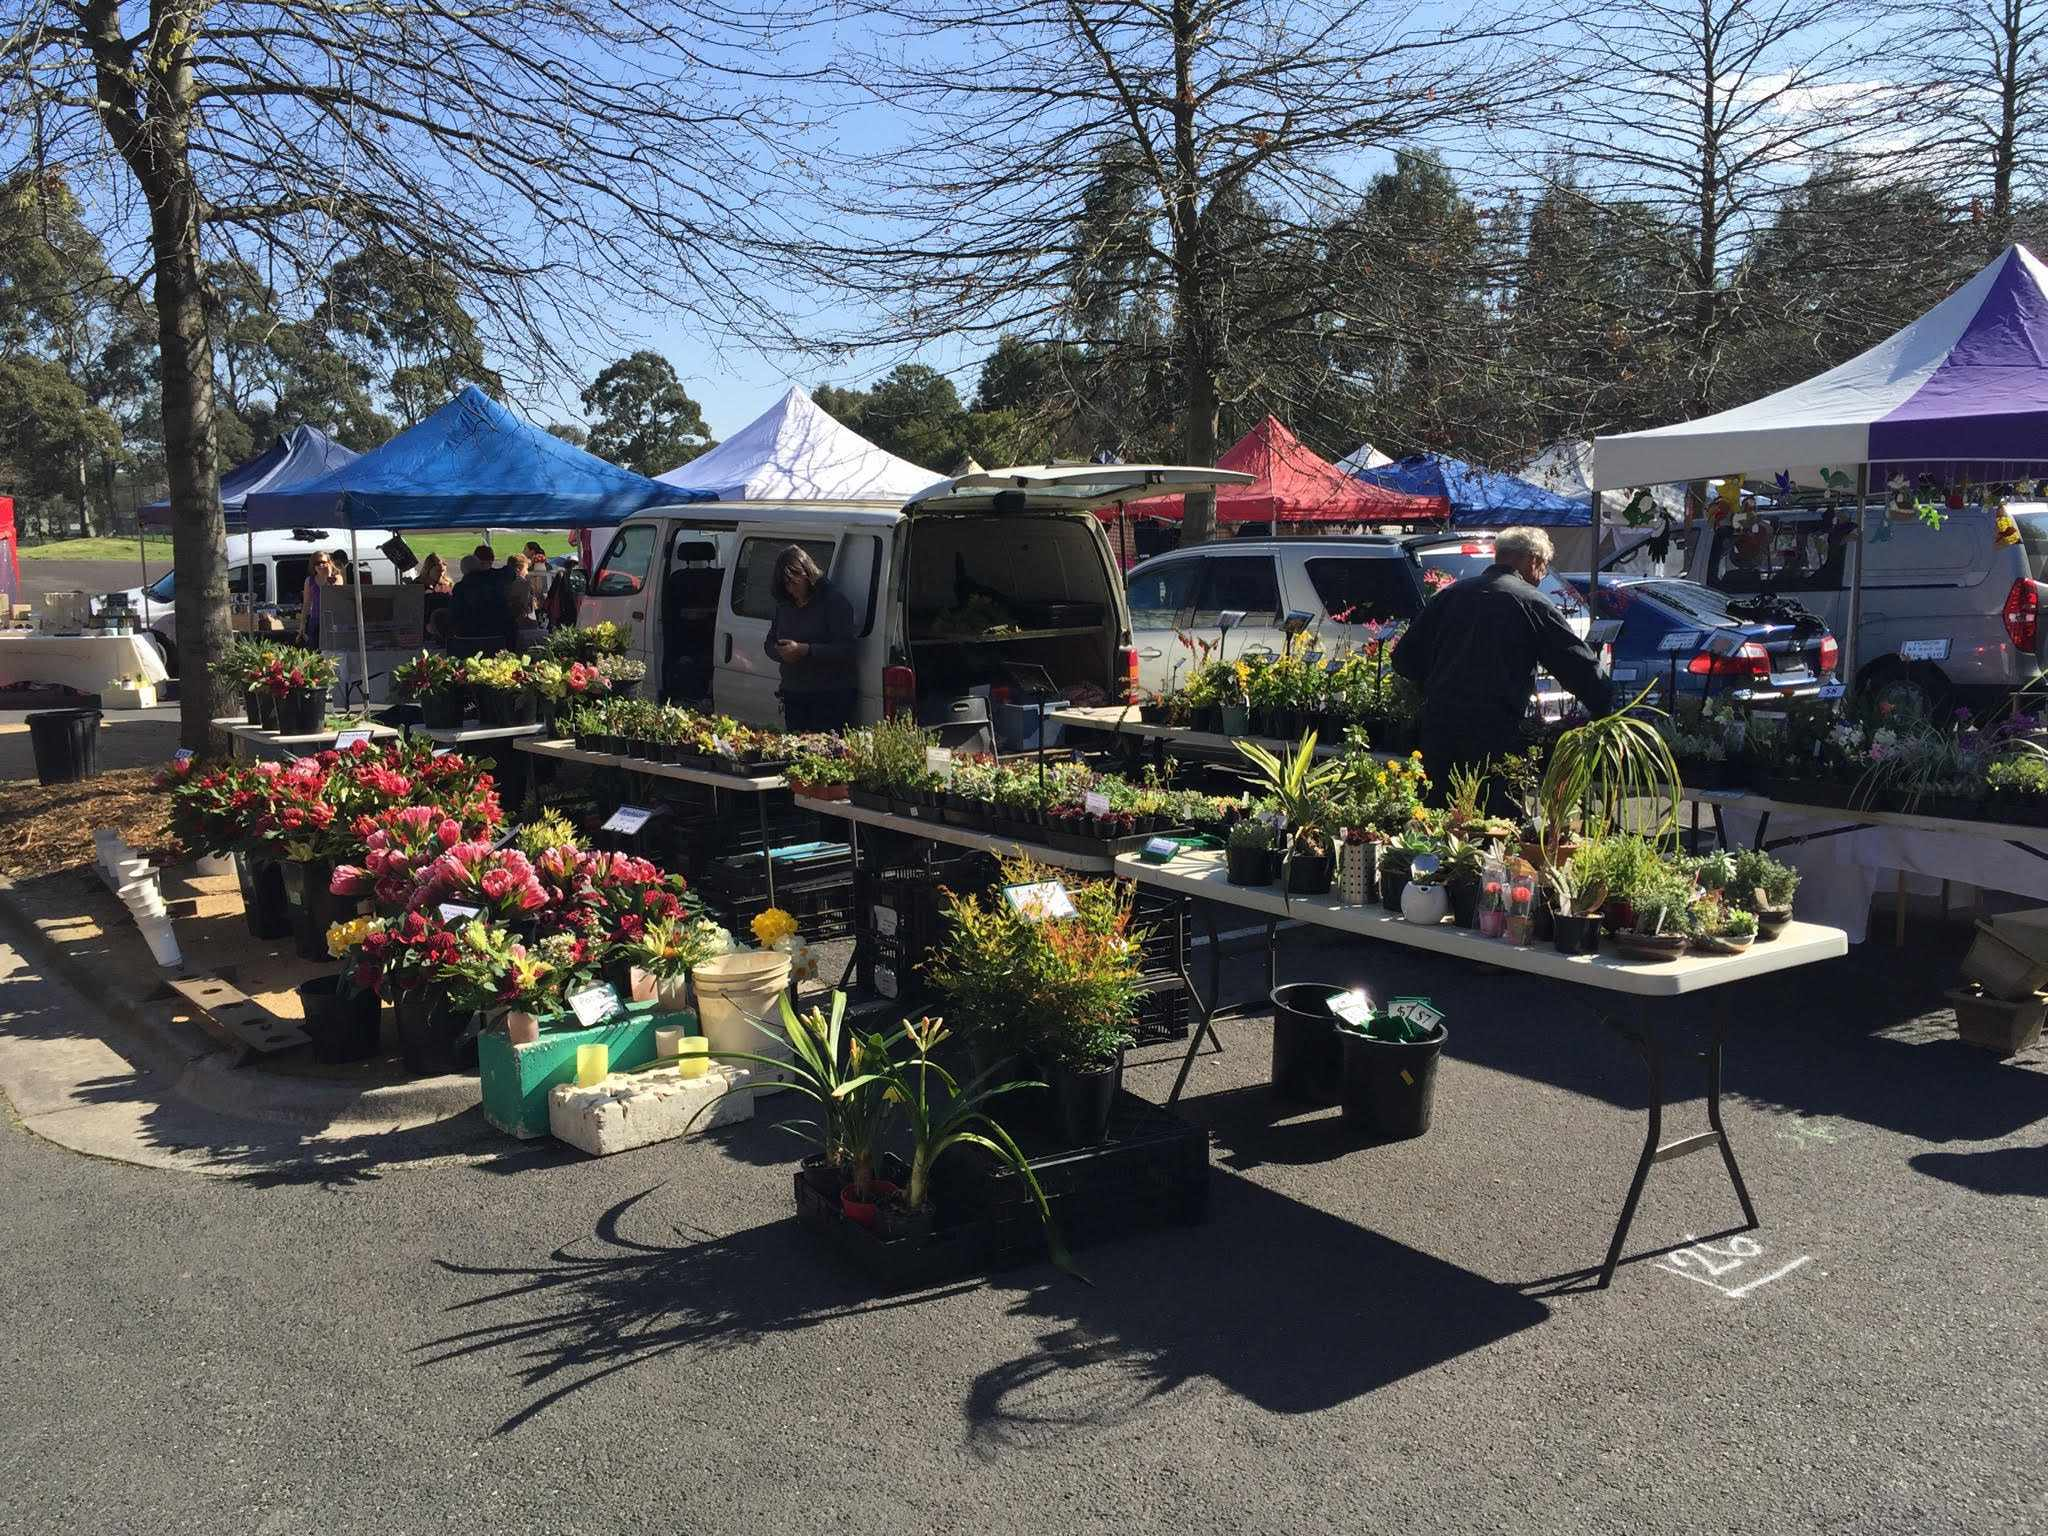 Free upwey grass roots market melbourne for The perfect vegetable garden